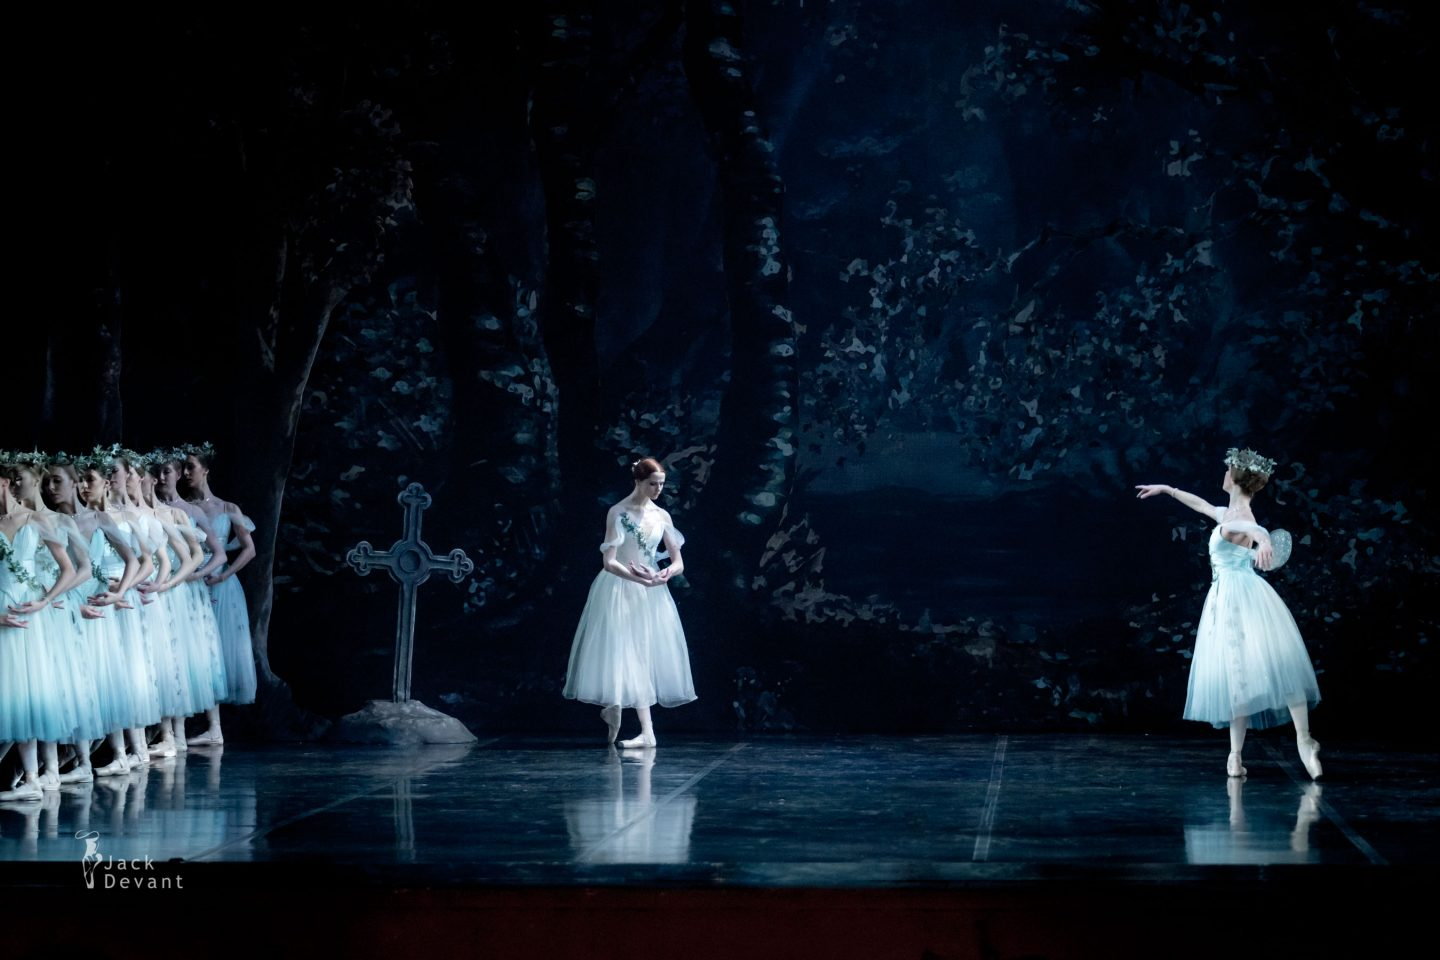 Elisabetta Formento as Myrtha and Alena Shkatula in Giselle Act 2